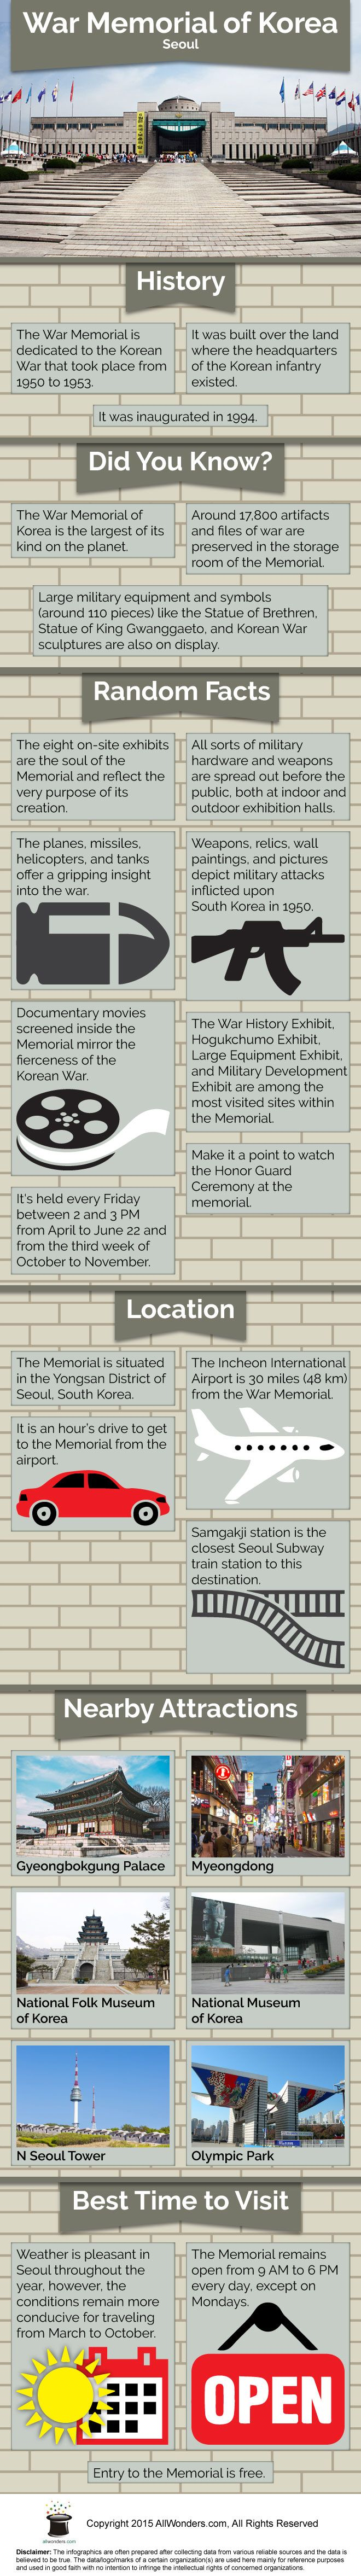 "GOOD TO KNOW, and its surroundings are fantastic! But does it only show South Korean things..? There's a part that says ""inflicted on South Korea"", but it was a KOREAN war, meaning whole peninsula. War Memorial Of Korea Infographic"